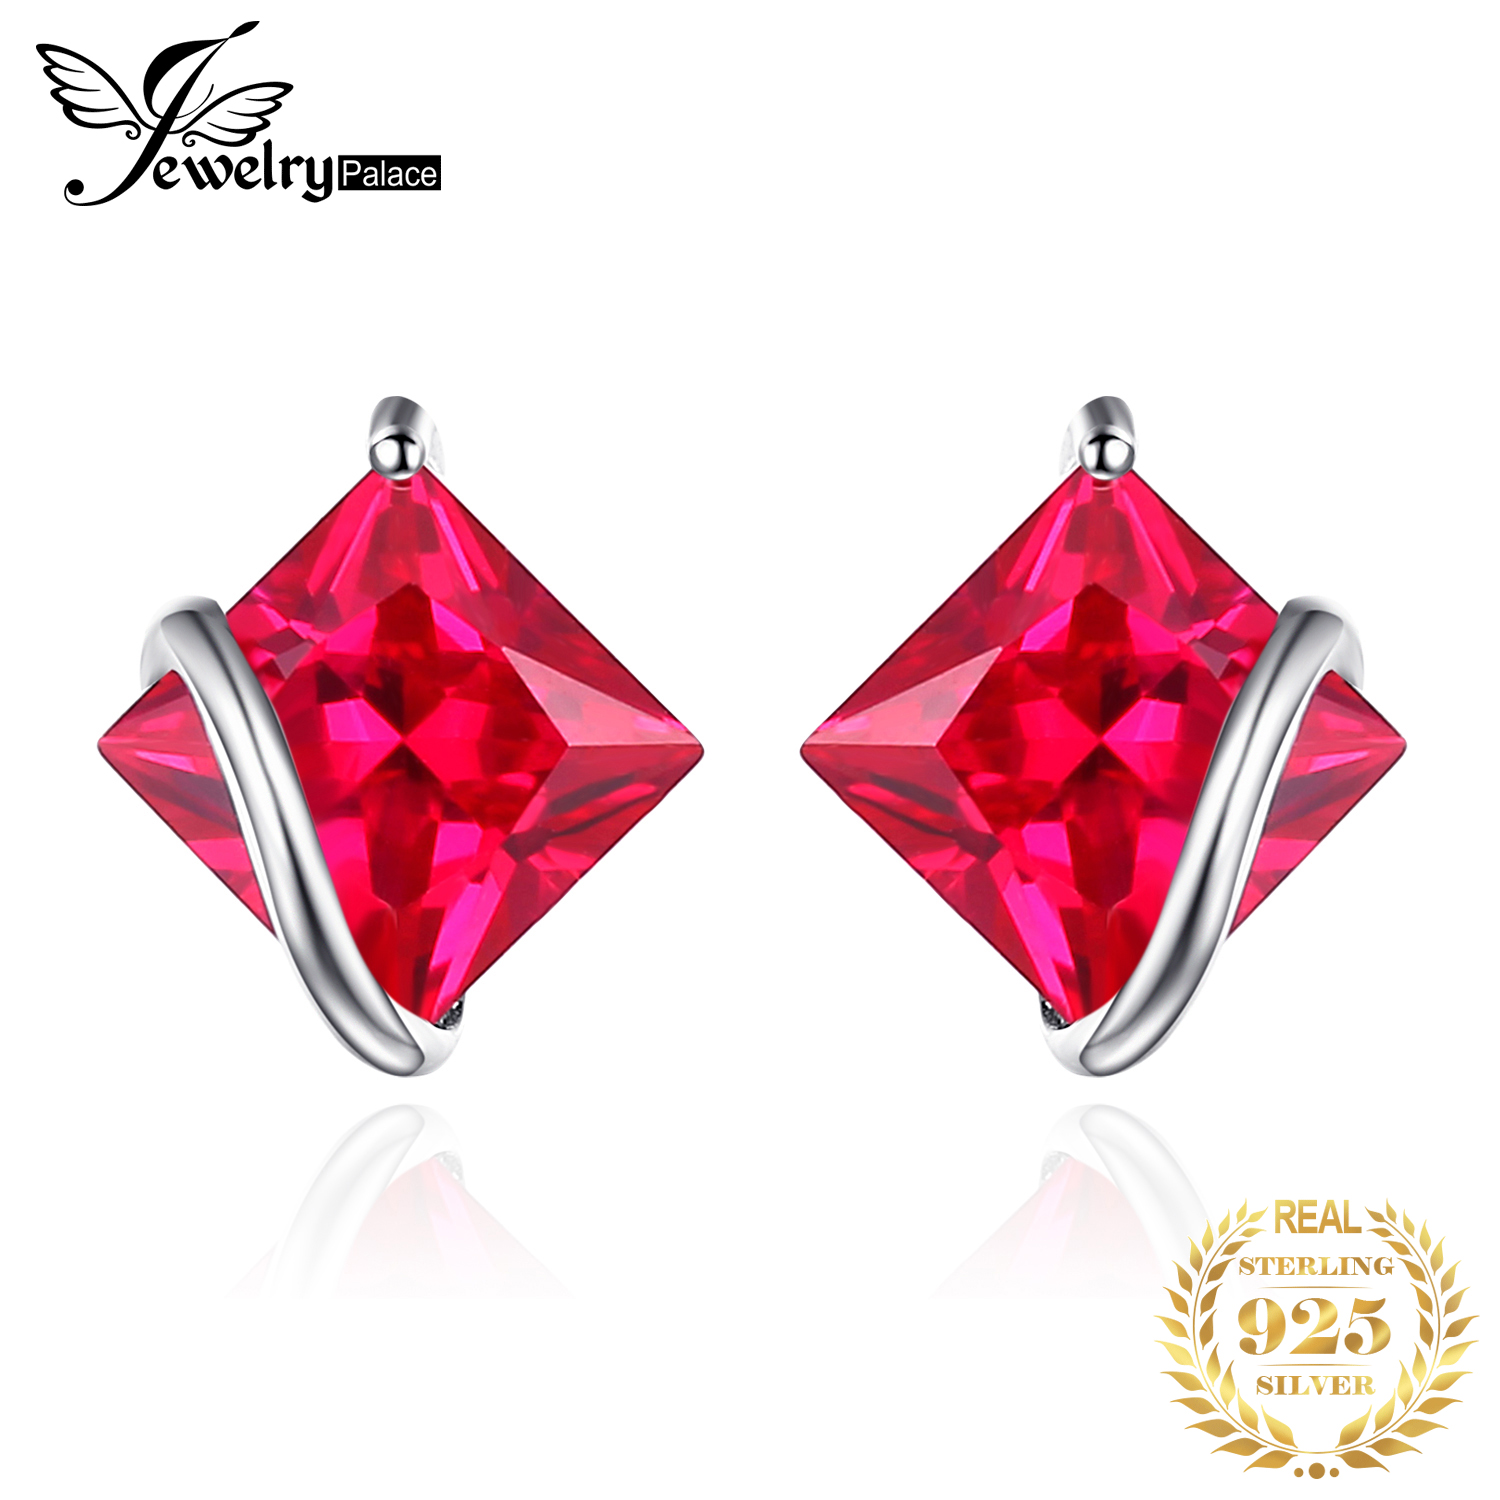 JewelryPalace Square Created Ruby Stud Earrings 925 Sterling Silver Earrings For Women Gemstone Korean Earings Fashion Jewelry